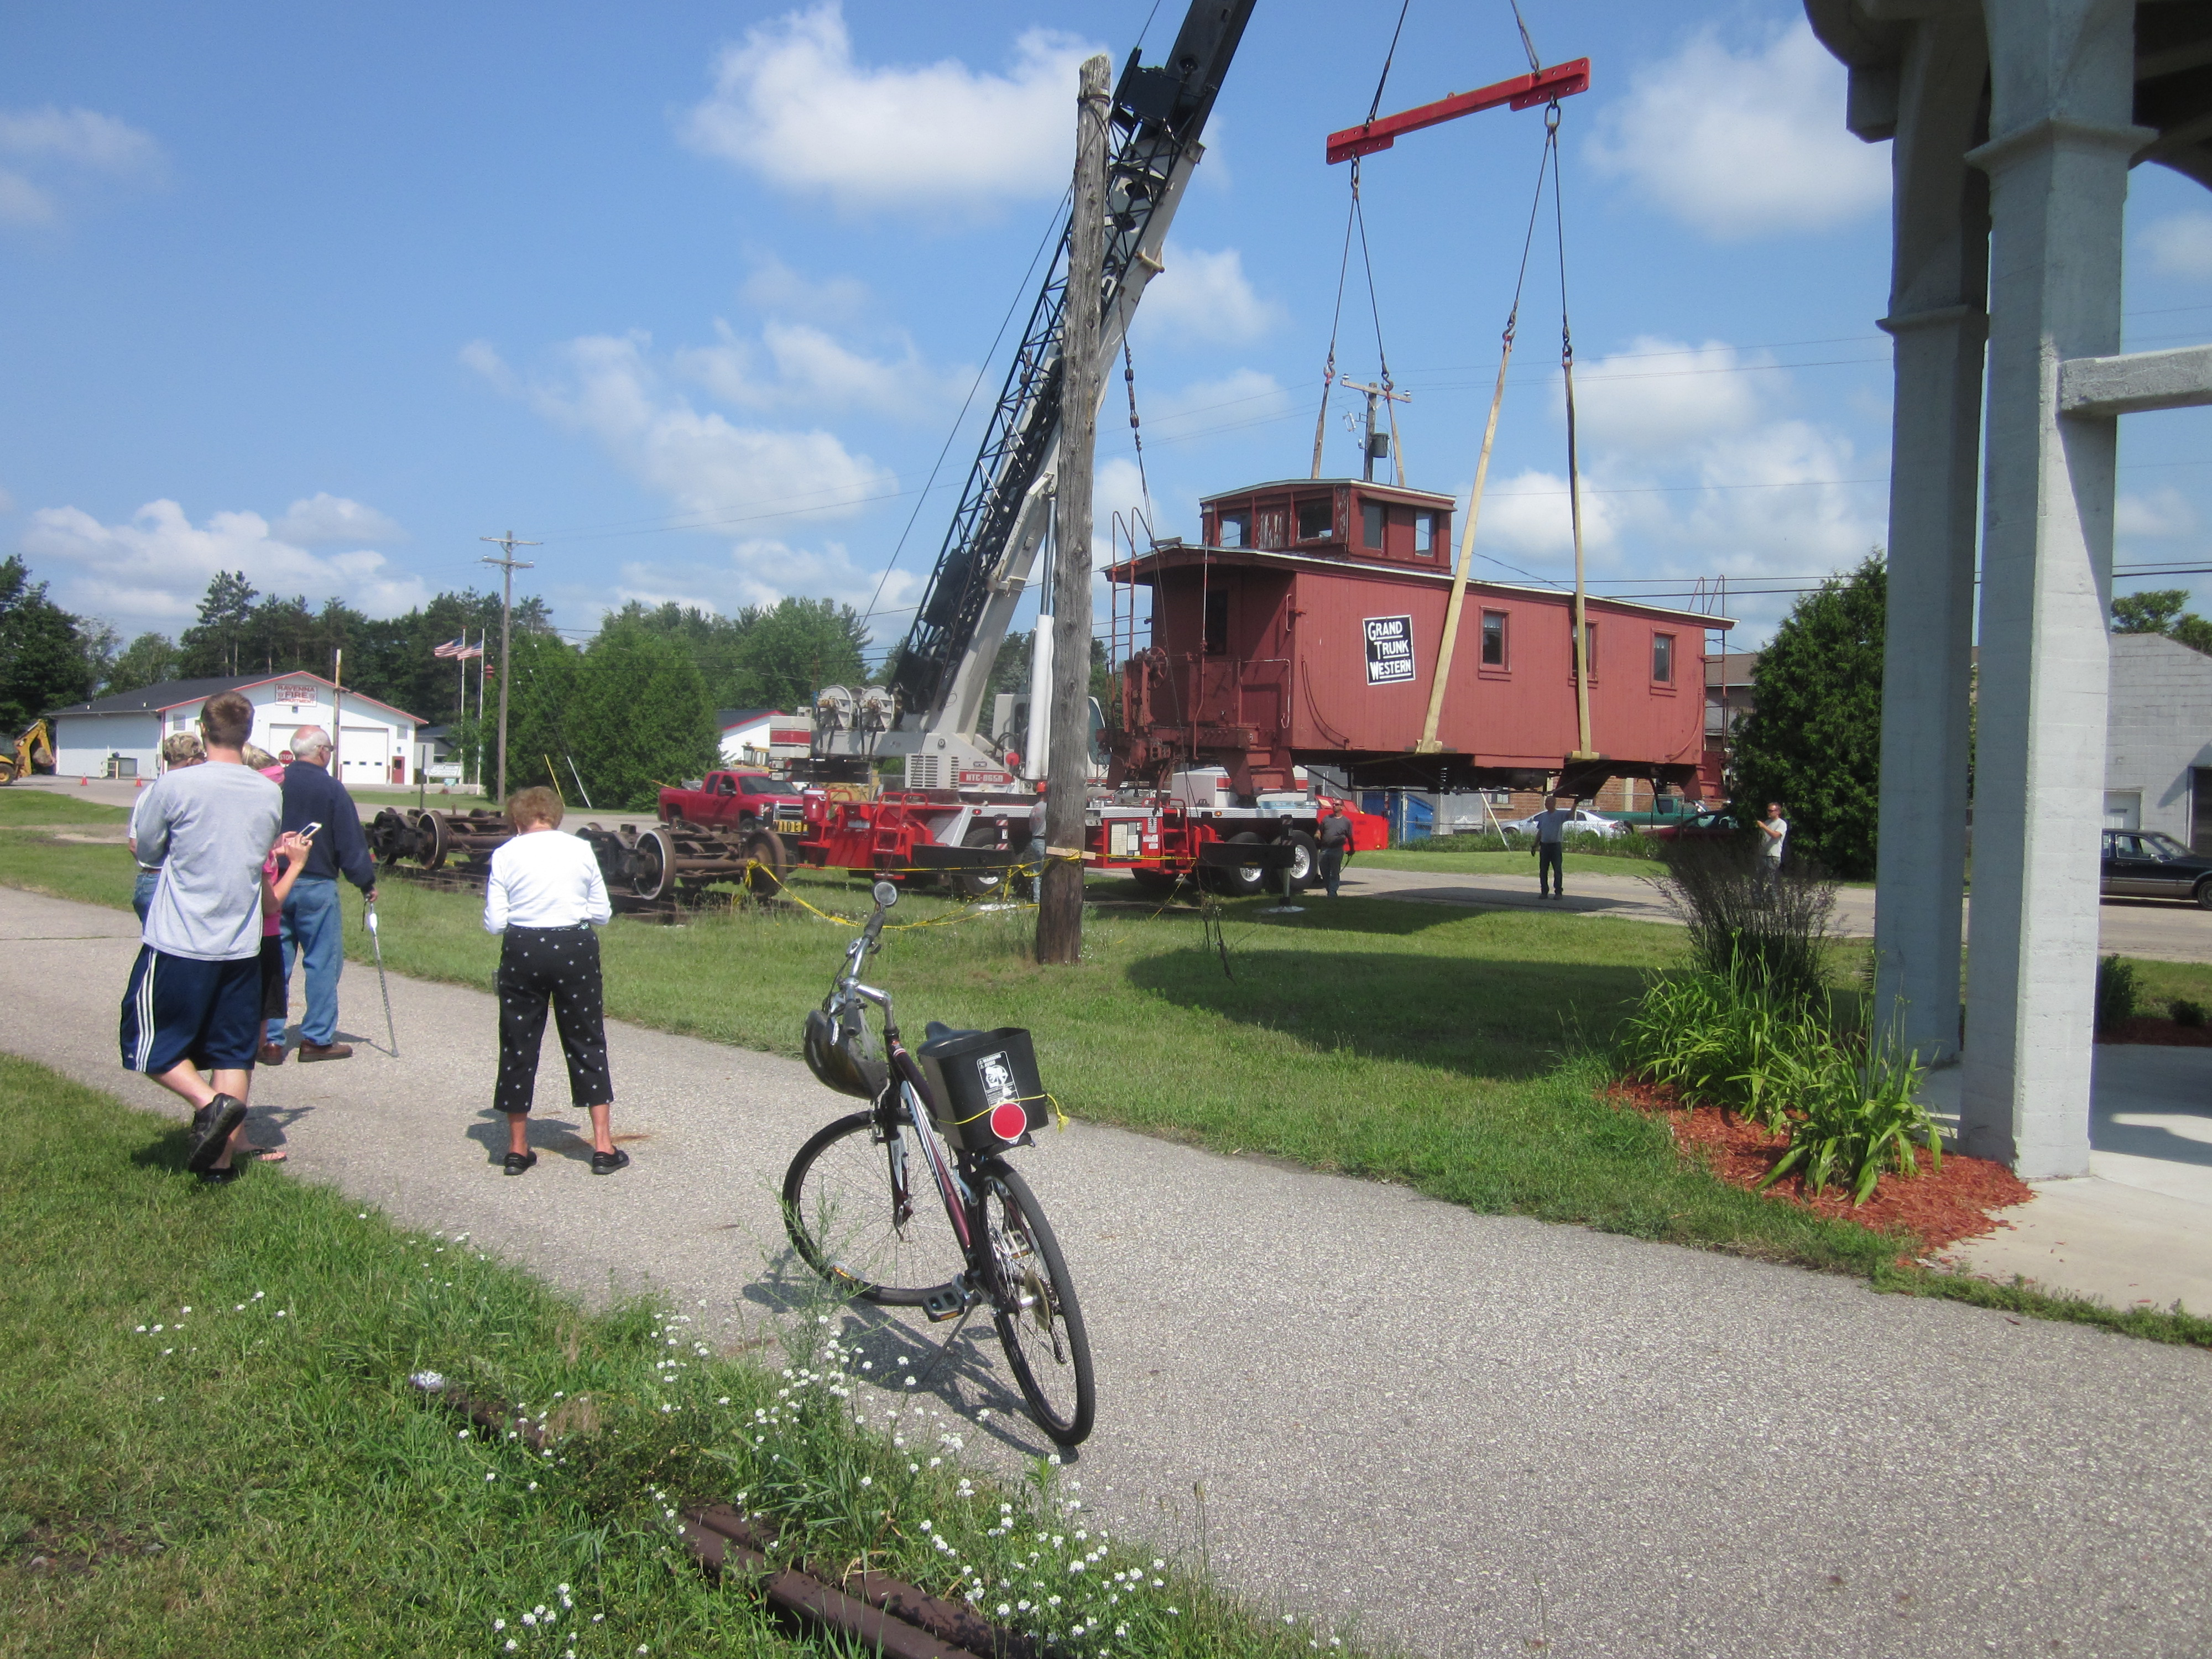 8. Delivery of Caboose at Ravenna Trail Head